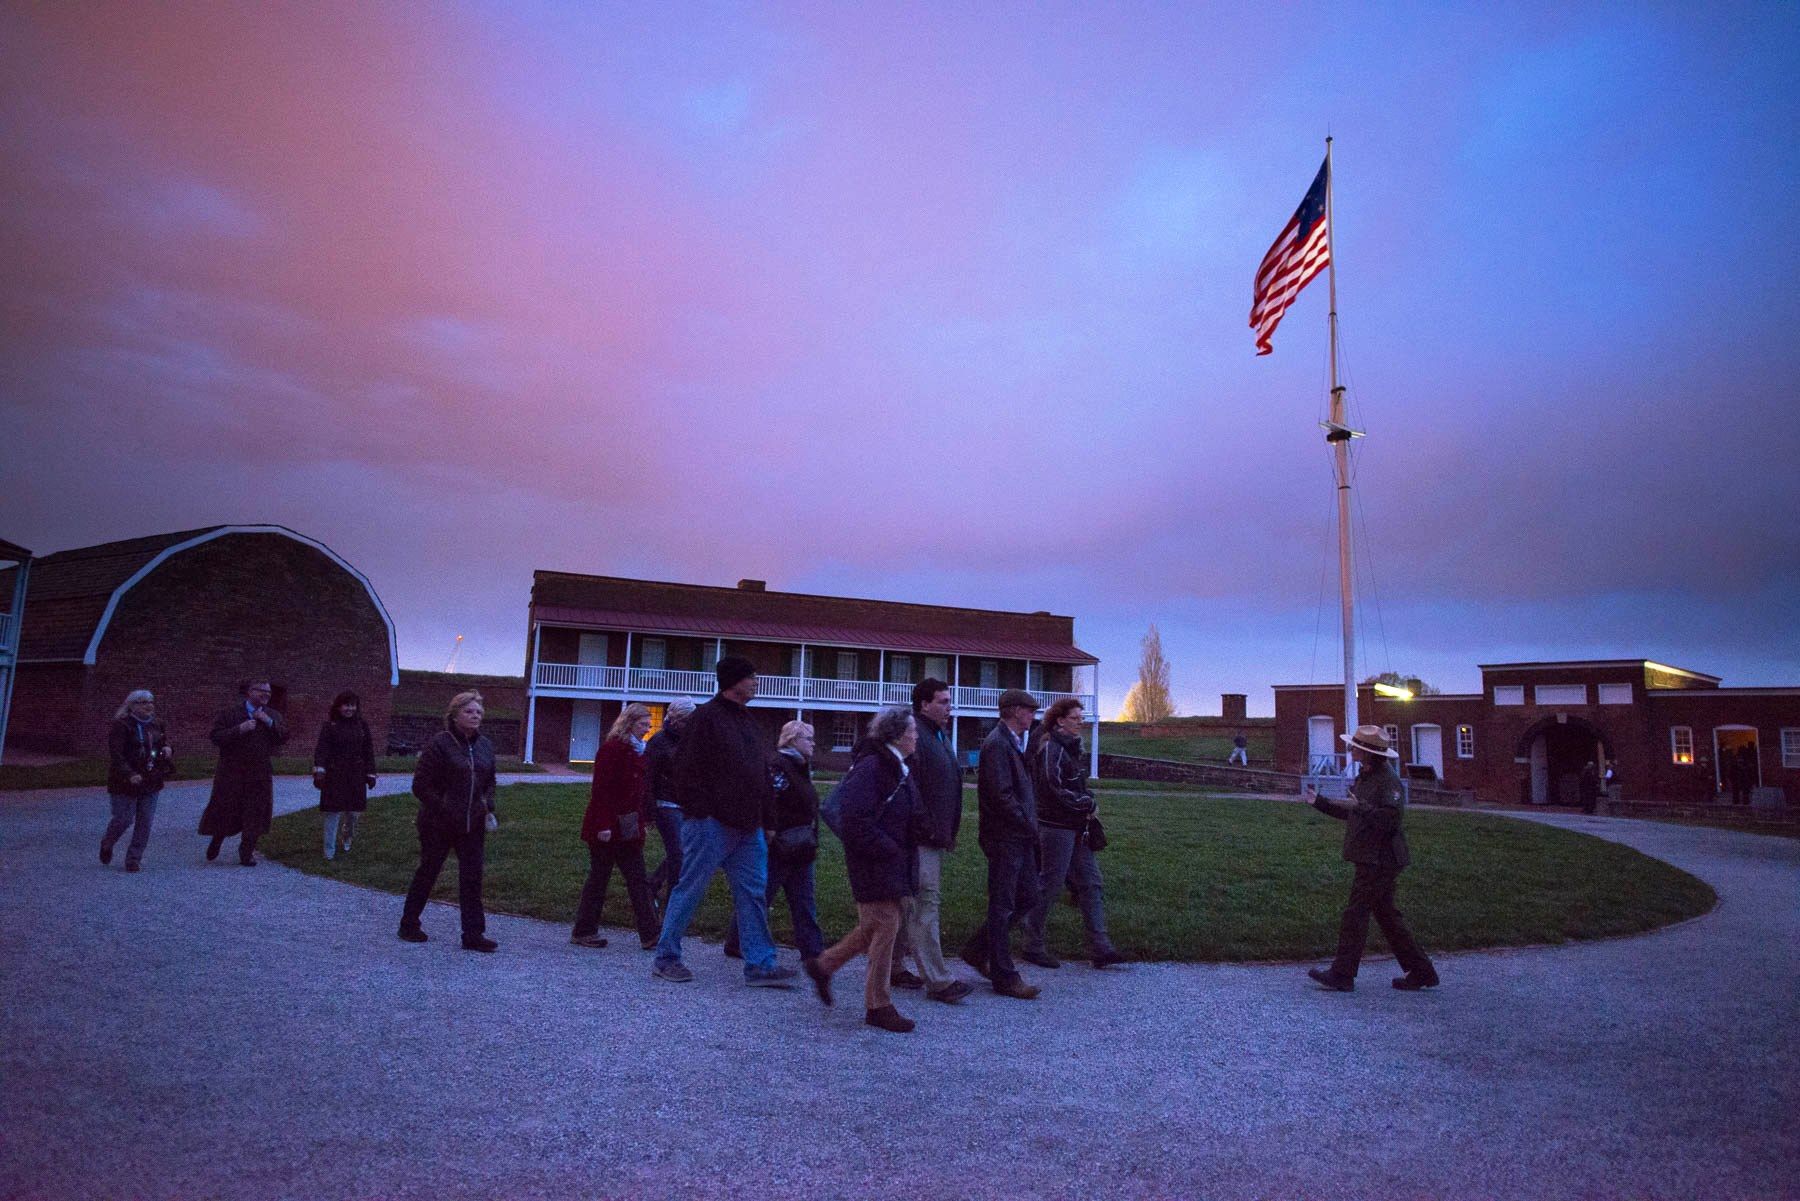 Park Ranger guiding visitors through the Star Fort during a candlelight tour.